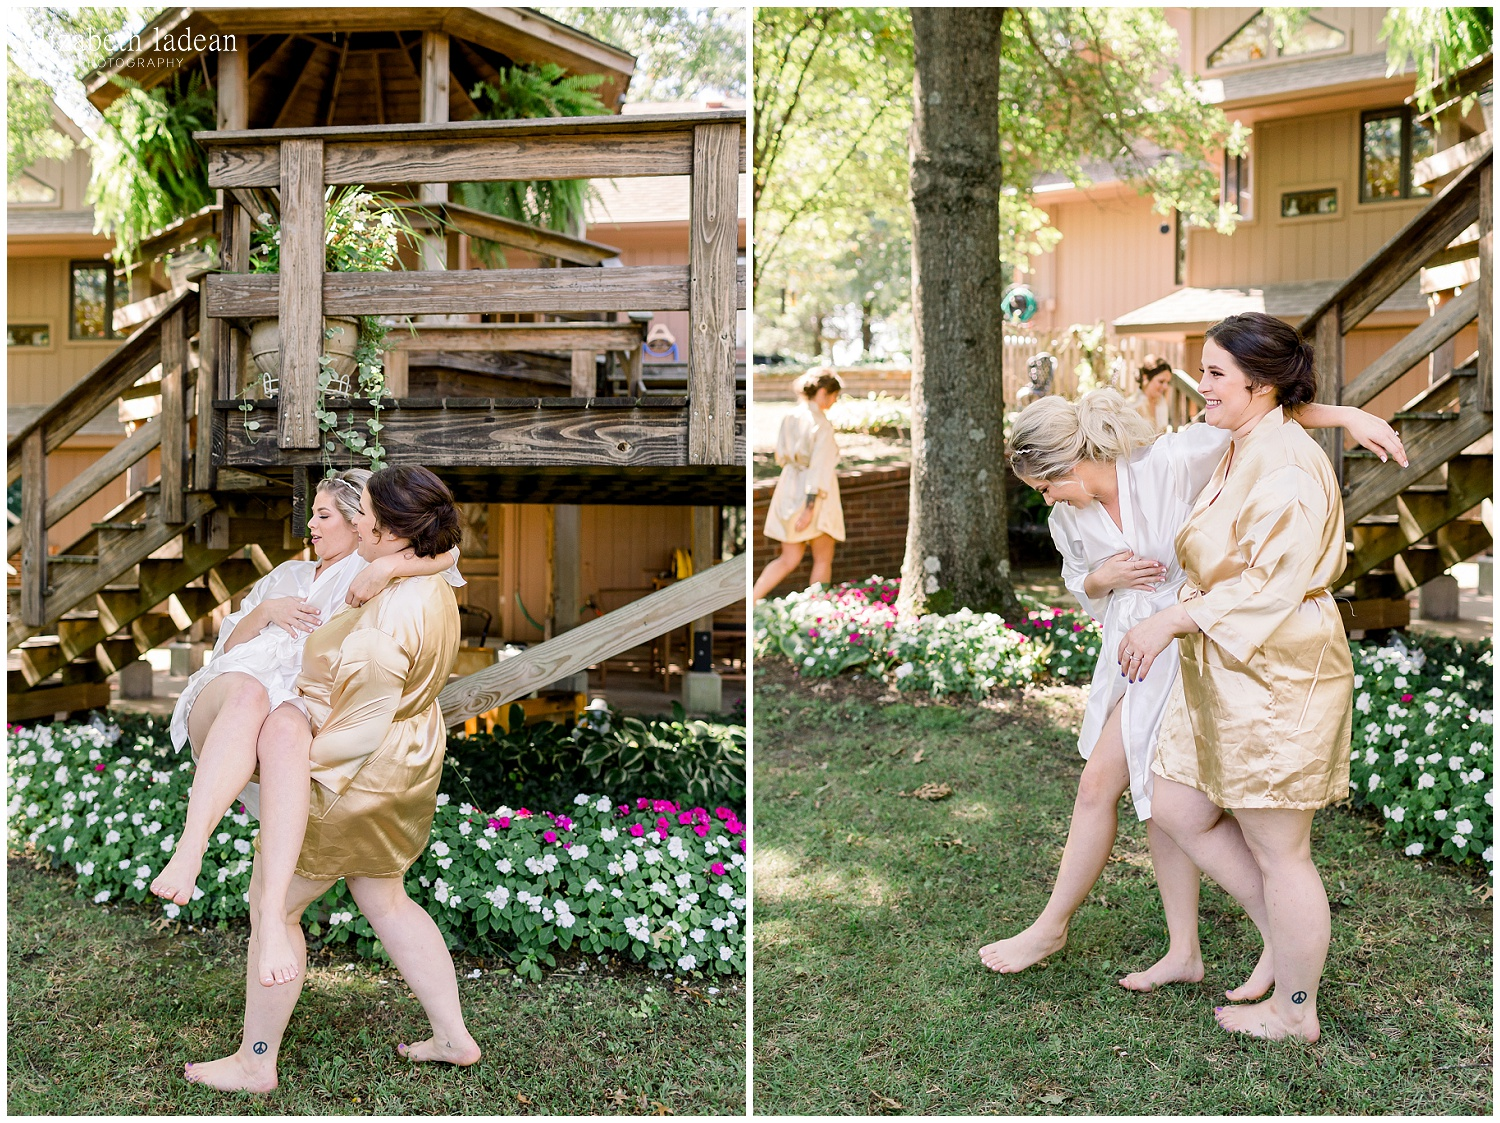 -behind-the-scenes-of-a-wedding-photographer-2018-elizabeth-ladean-photography-photo_3562.jpg